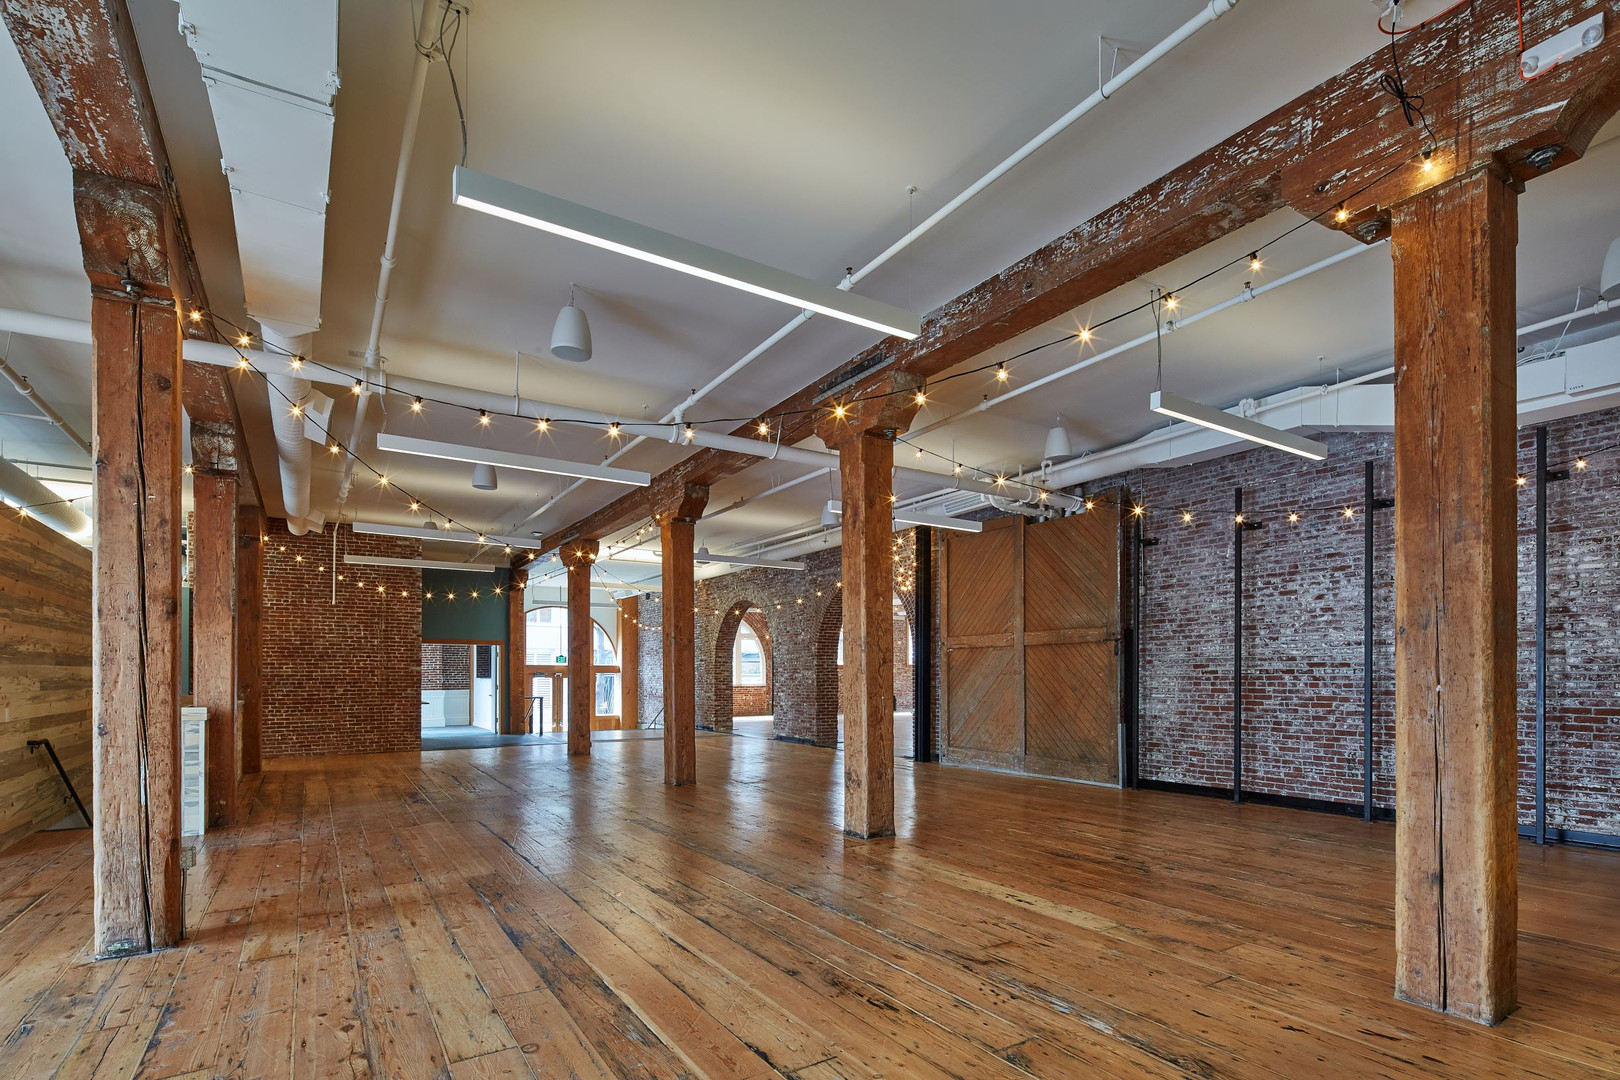 Wood Floors and Exposed Brick Walls in the Irving Street Studio